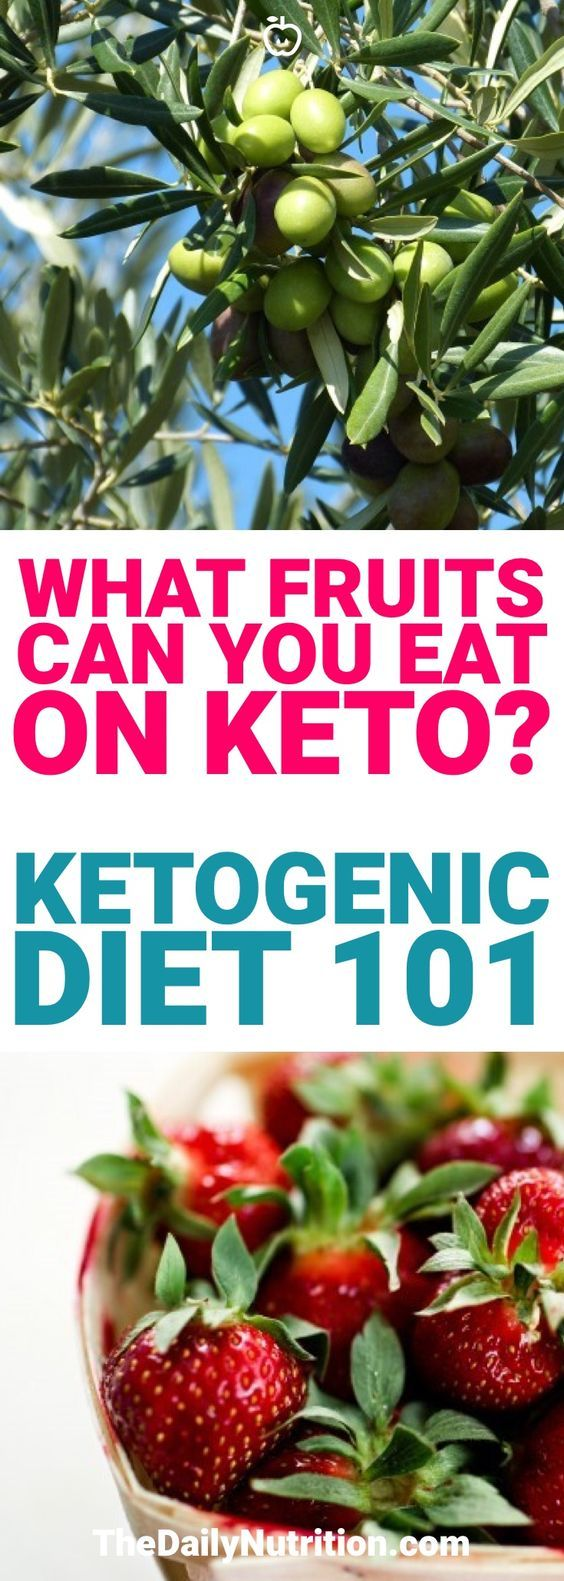 Hot Topics: The Ketogenic Diet